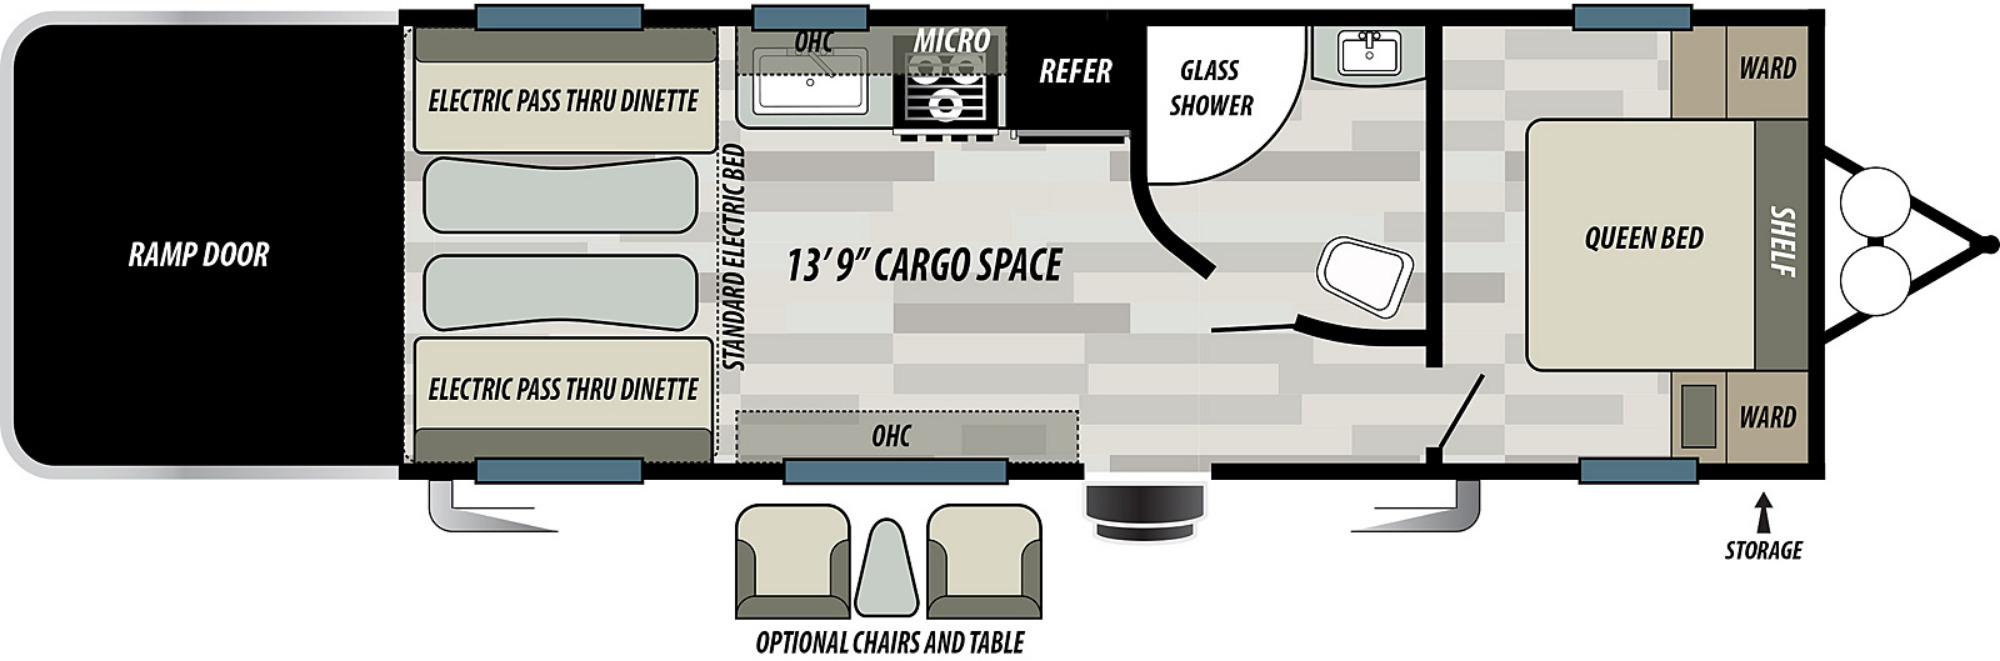 View Floor Plan for 2021 FOREST RIVER SHOCKWAVE 24RQMX